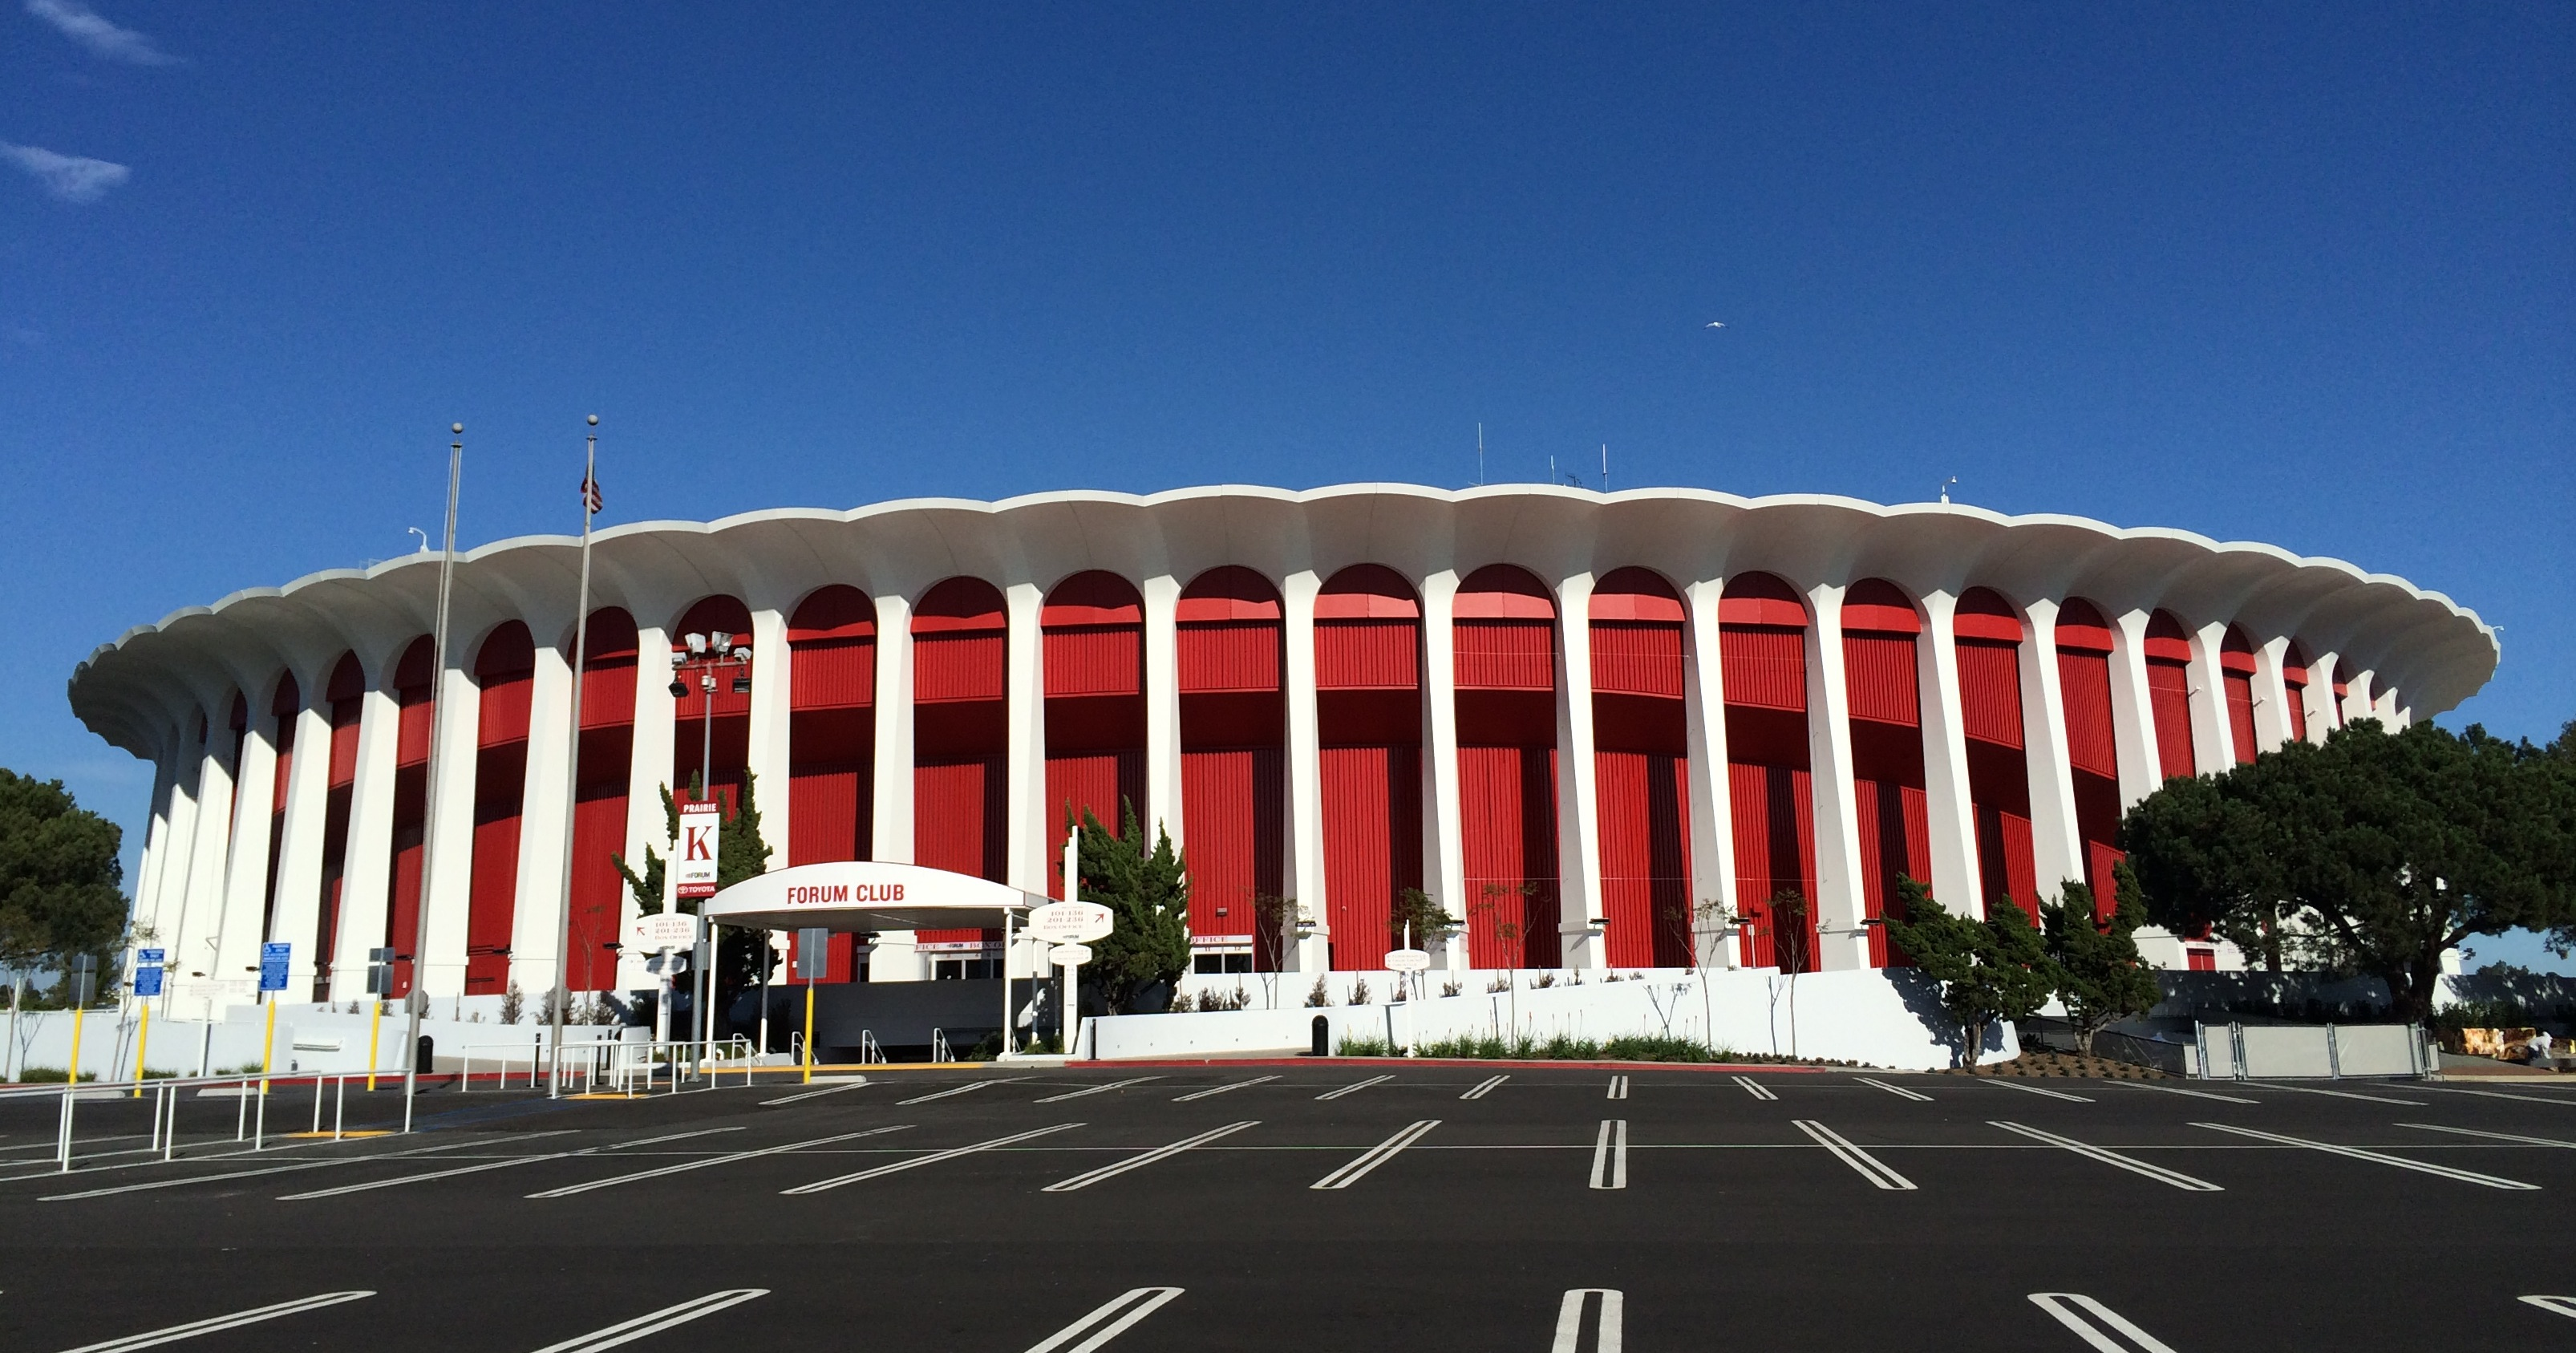 The forum inglewood california wikiwand for How much to park at lax